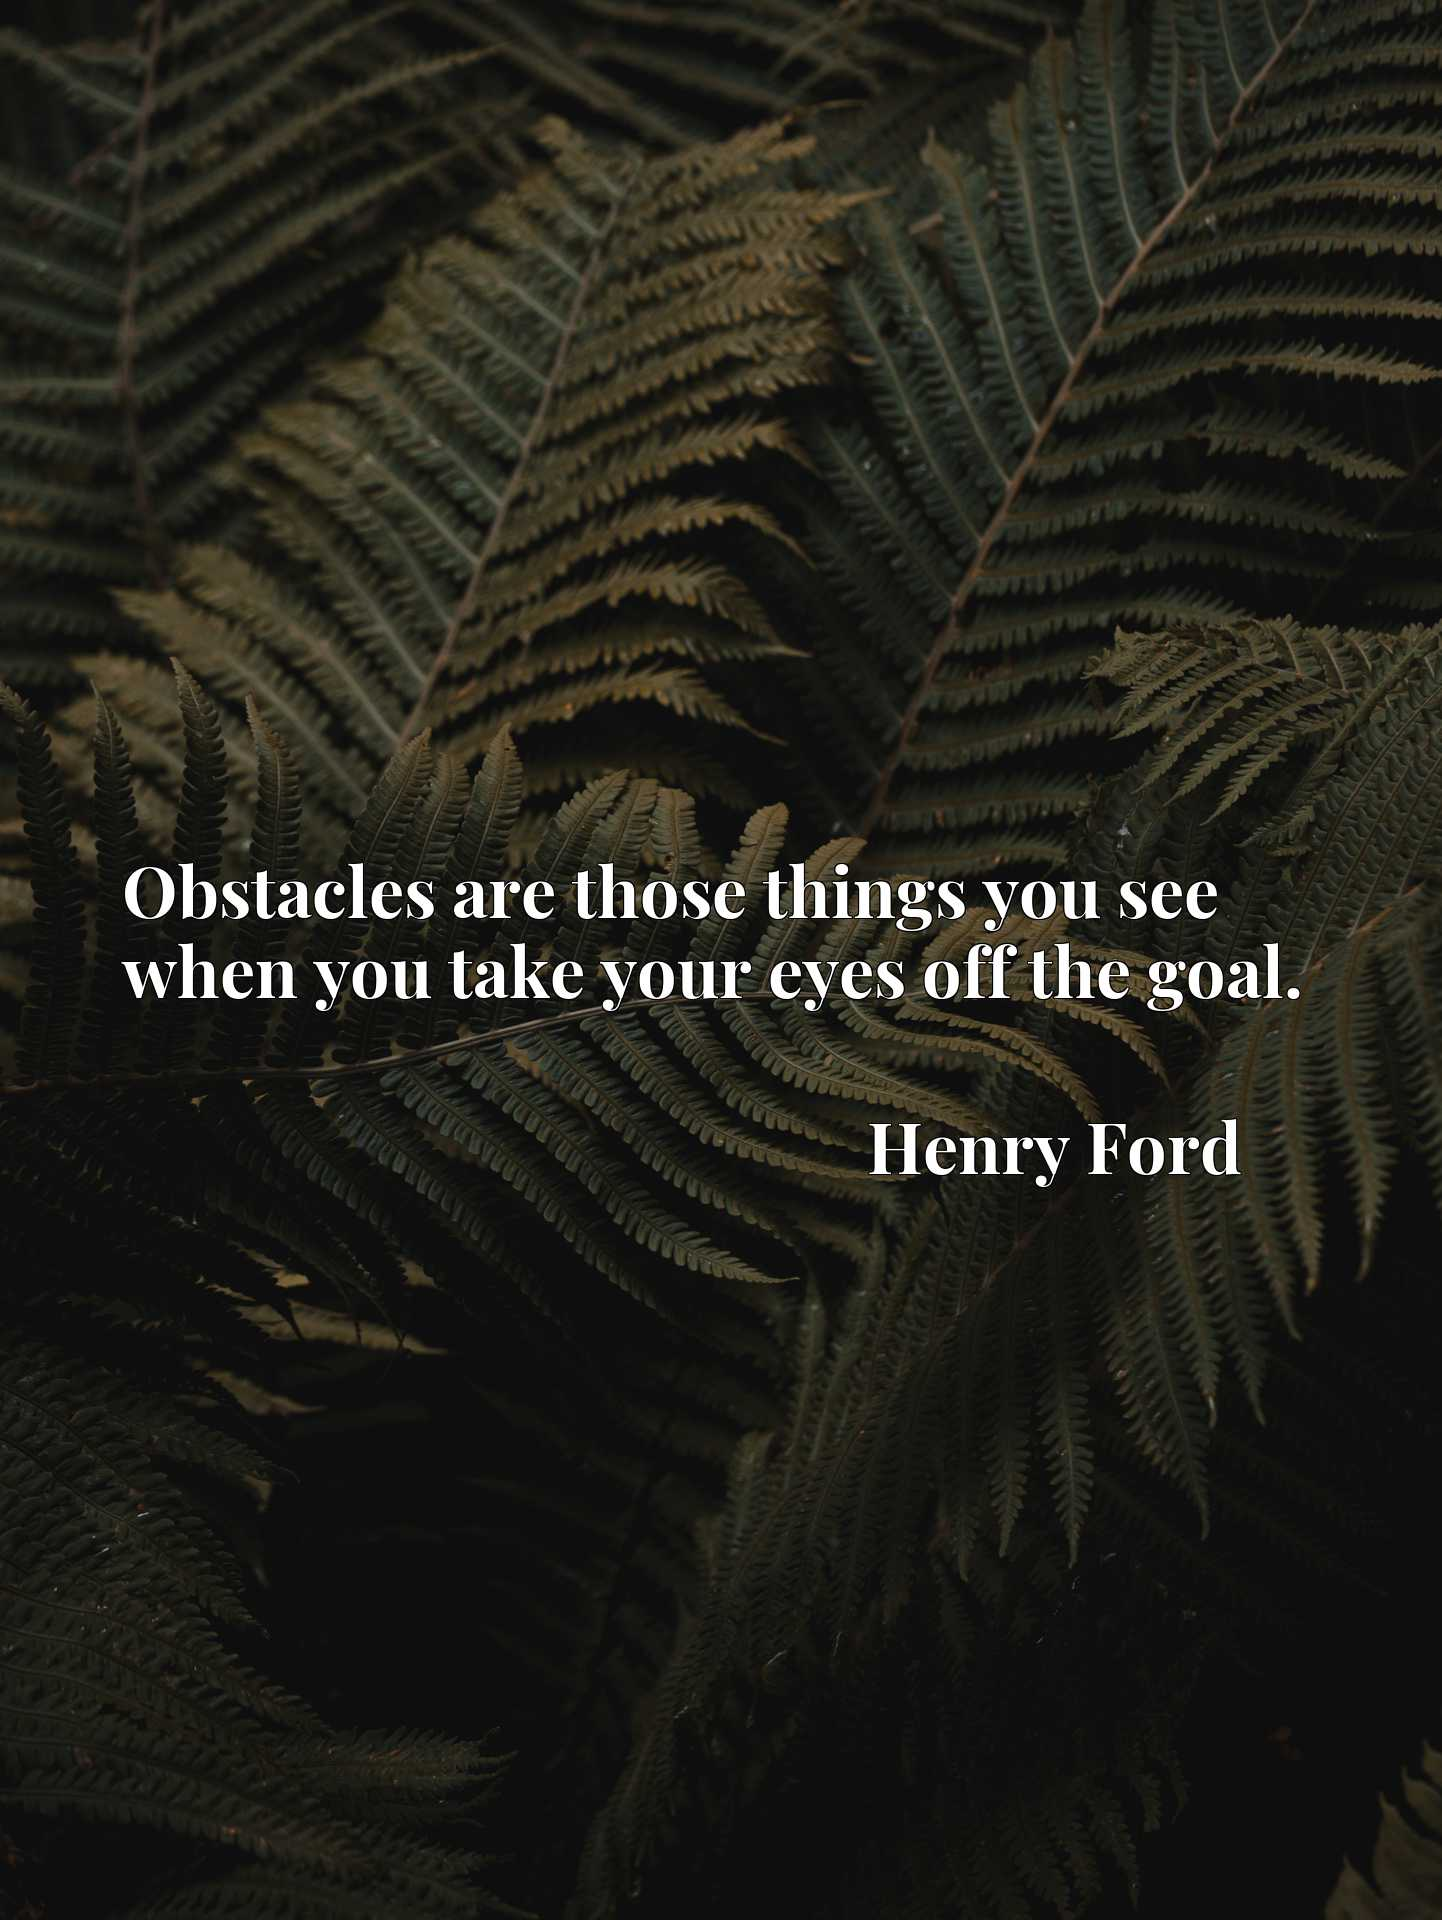 Obstacles are those things you see when you take your eyes off the goal.